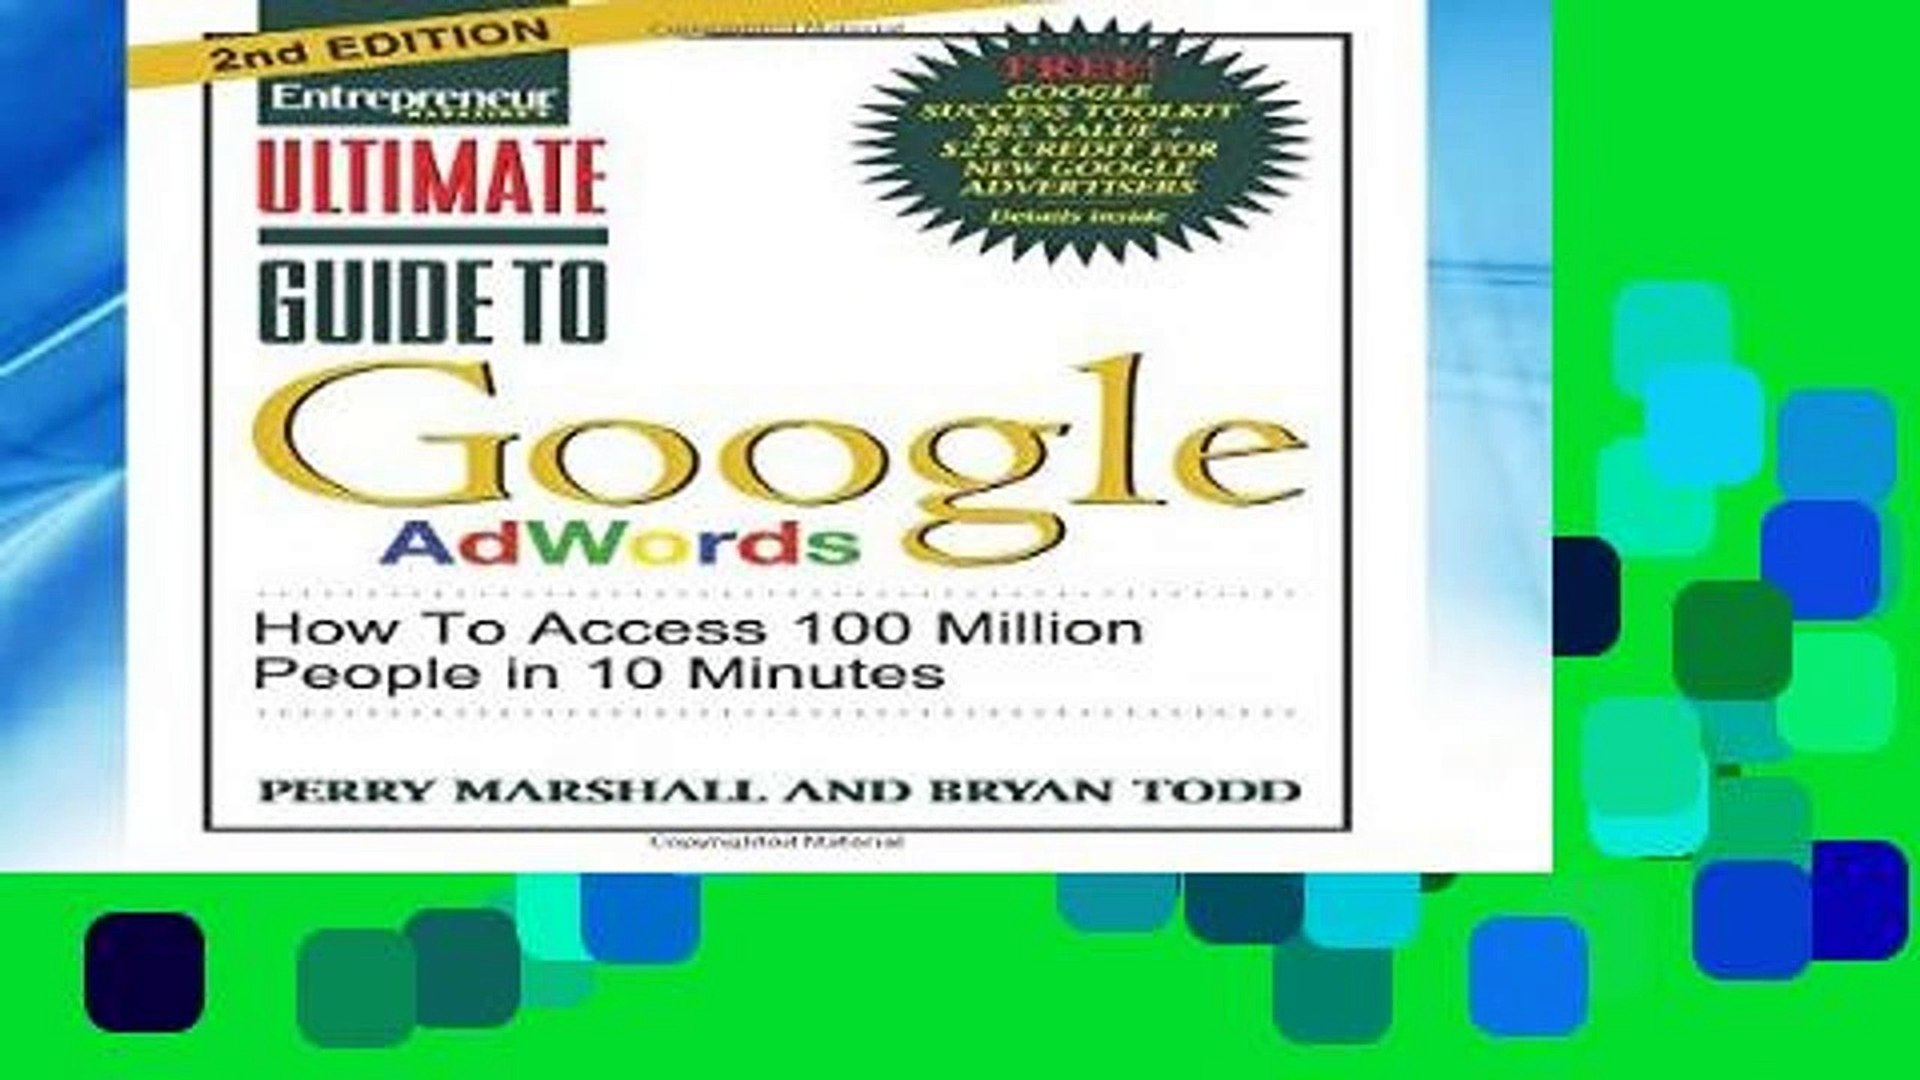 F.R.E.E [D.O.W.N.L.O.A.D] Ultimate Guide to Google Ad Words: How To Access 100 Million People in